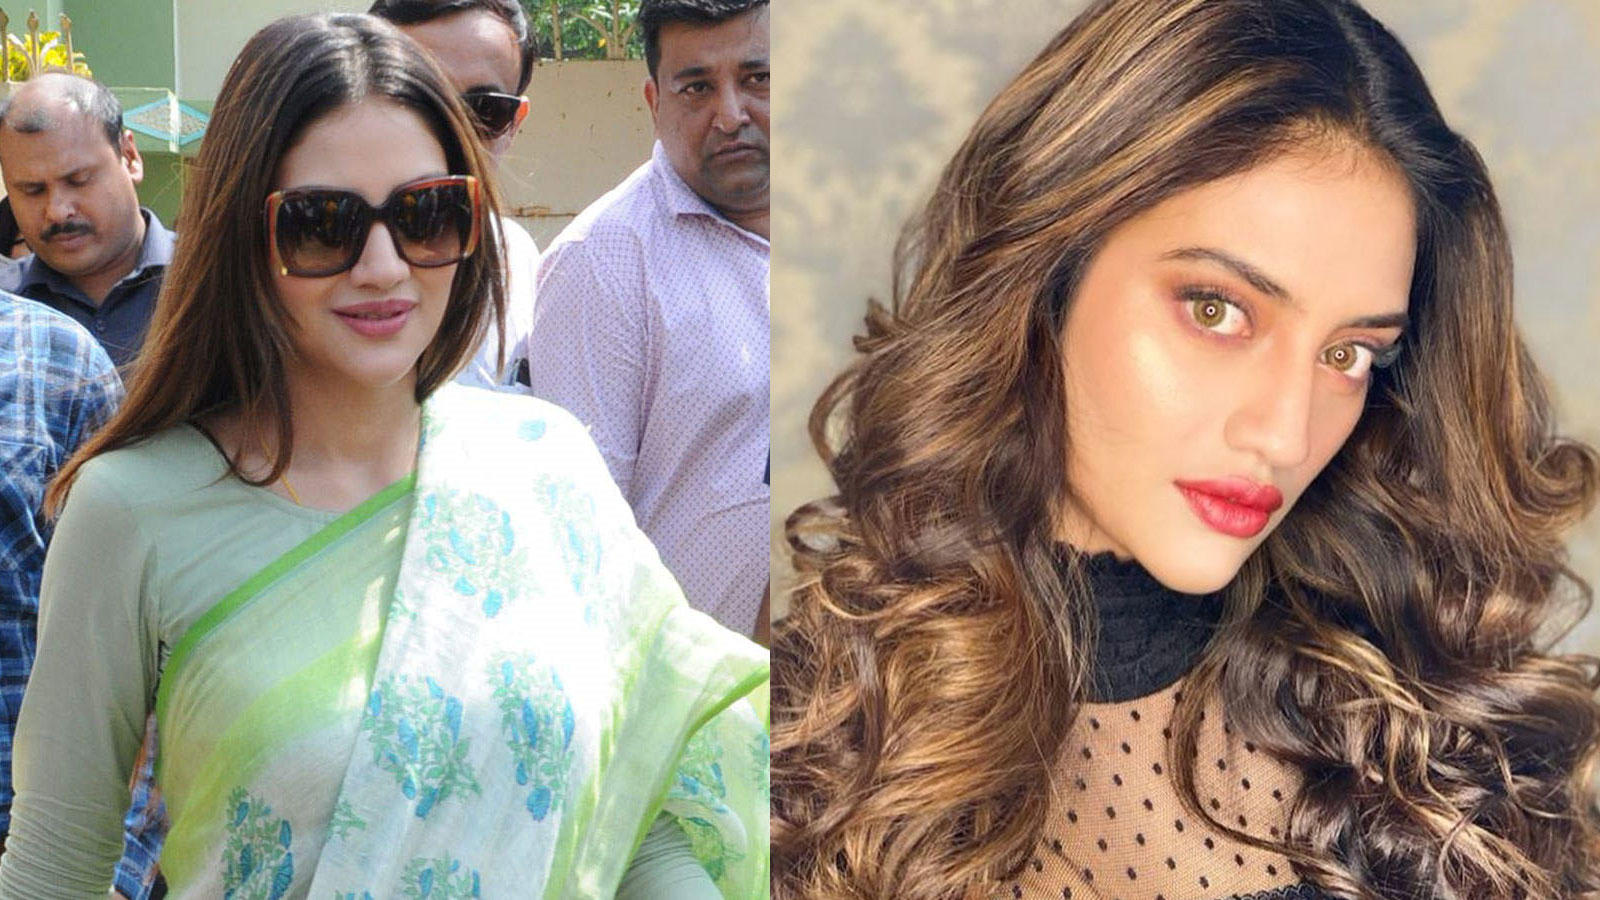 amid-coronavirus-pandemic-actress-turned-mp-nusrat-jahan-urges-people-to-not-indulge-in-politics-and-casteism-when-there-are-lives-at-stake